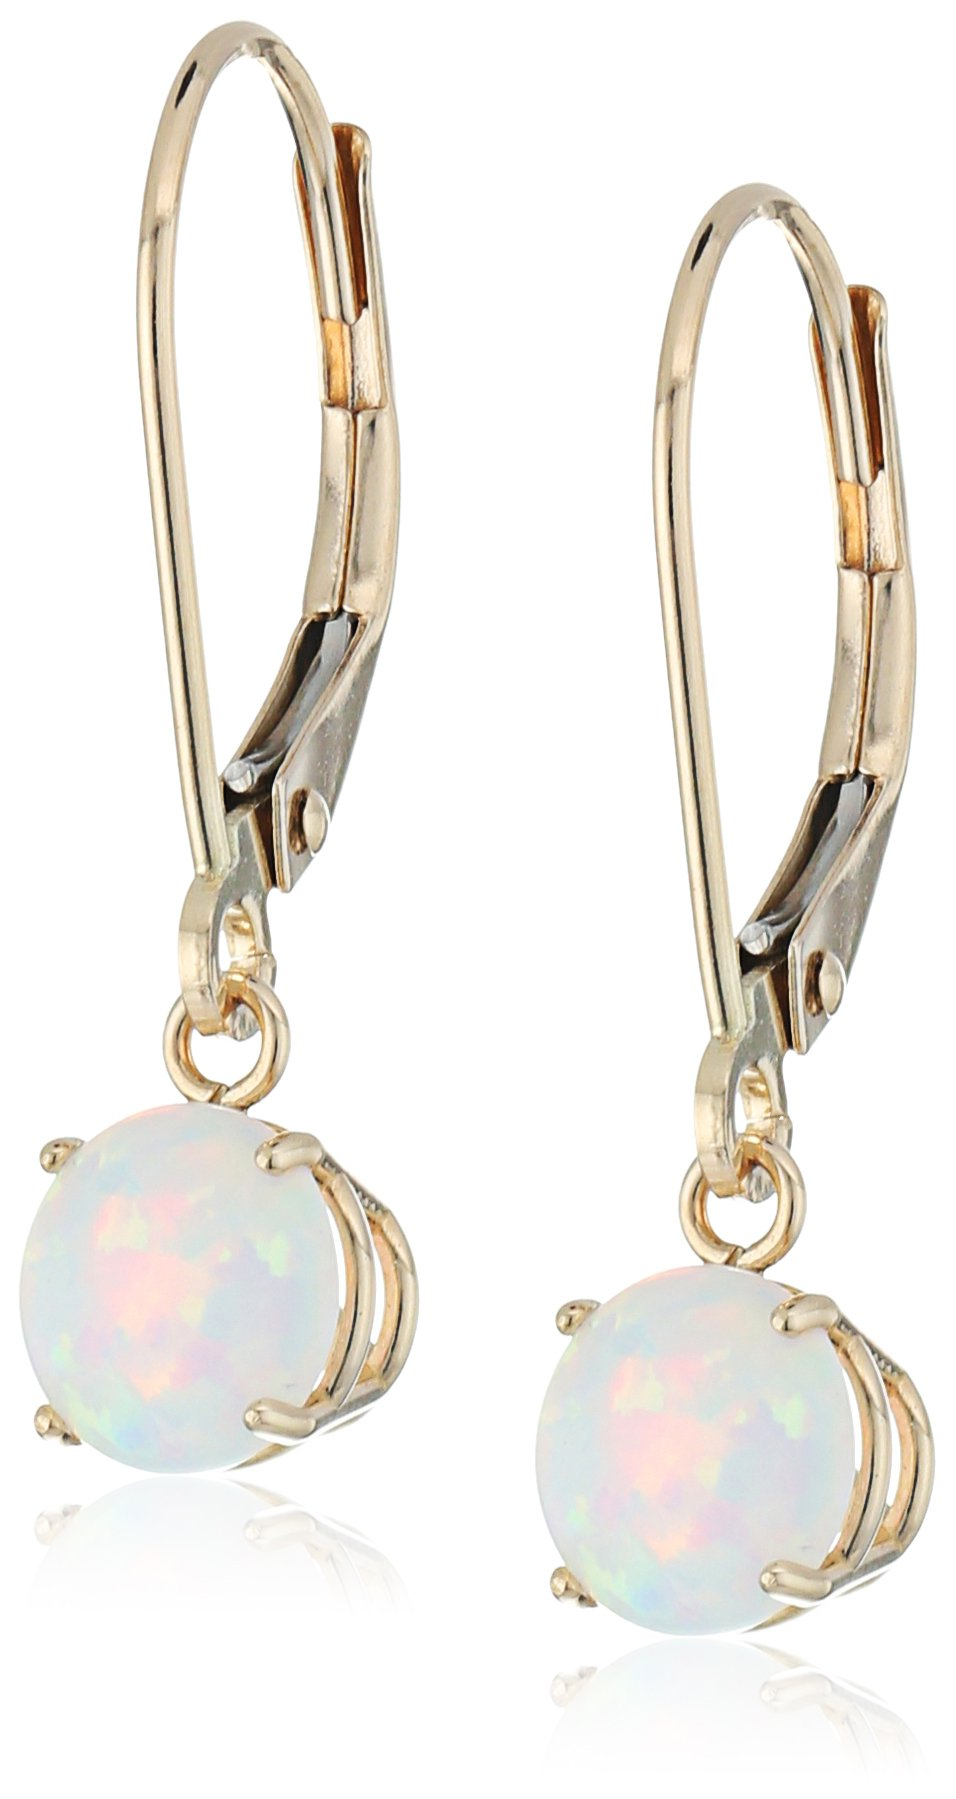 10k Yellow Gold Round Checkerboard Cut Created Opal Leverback Earrings (6mm)